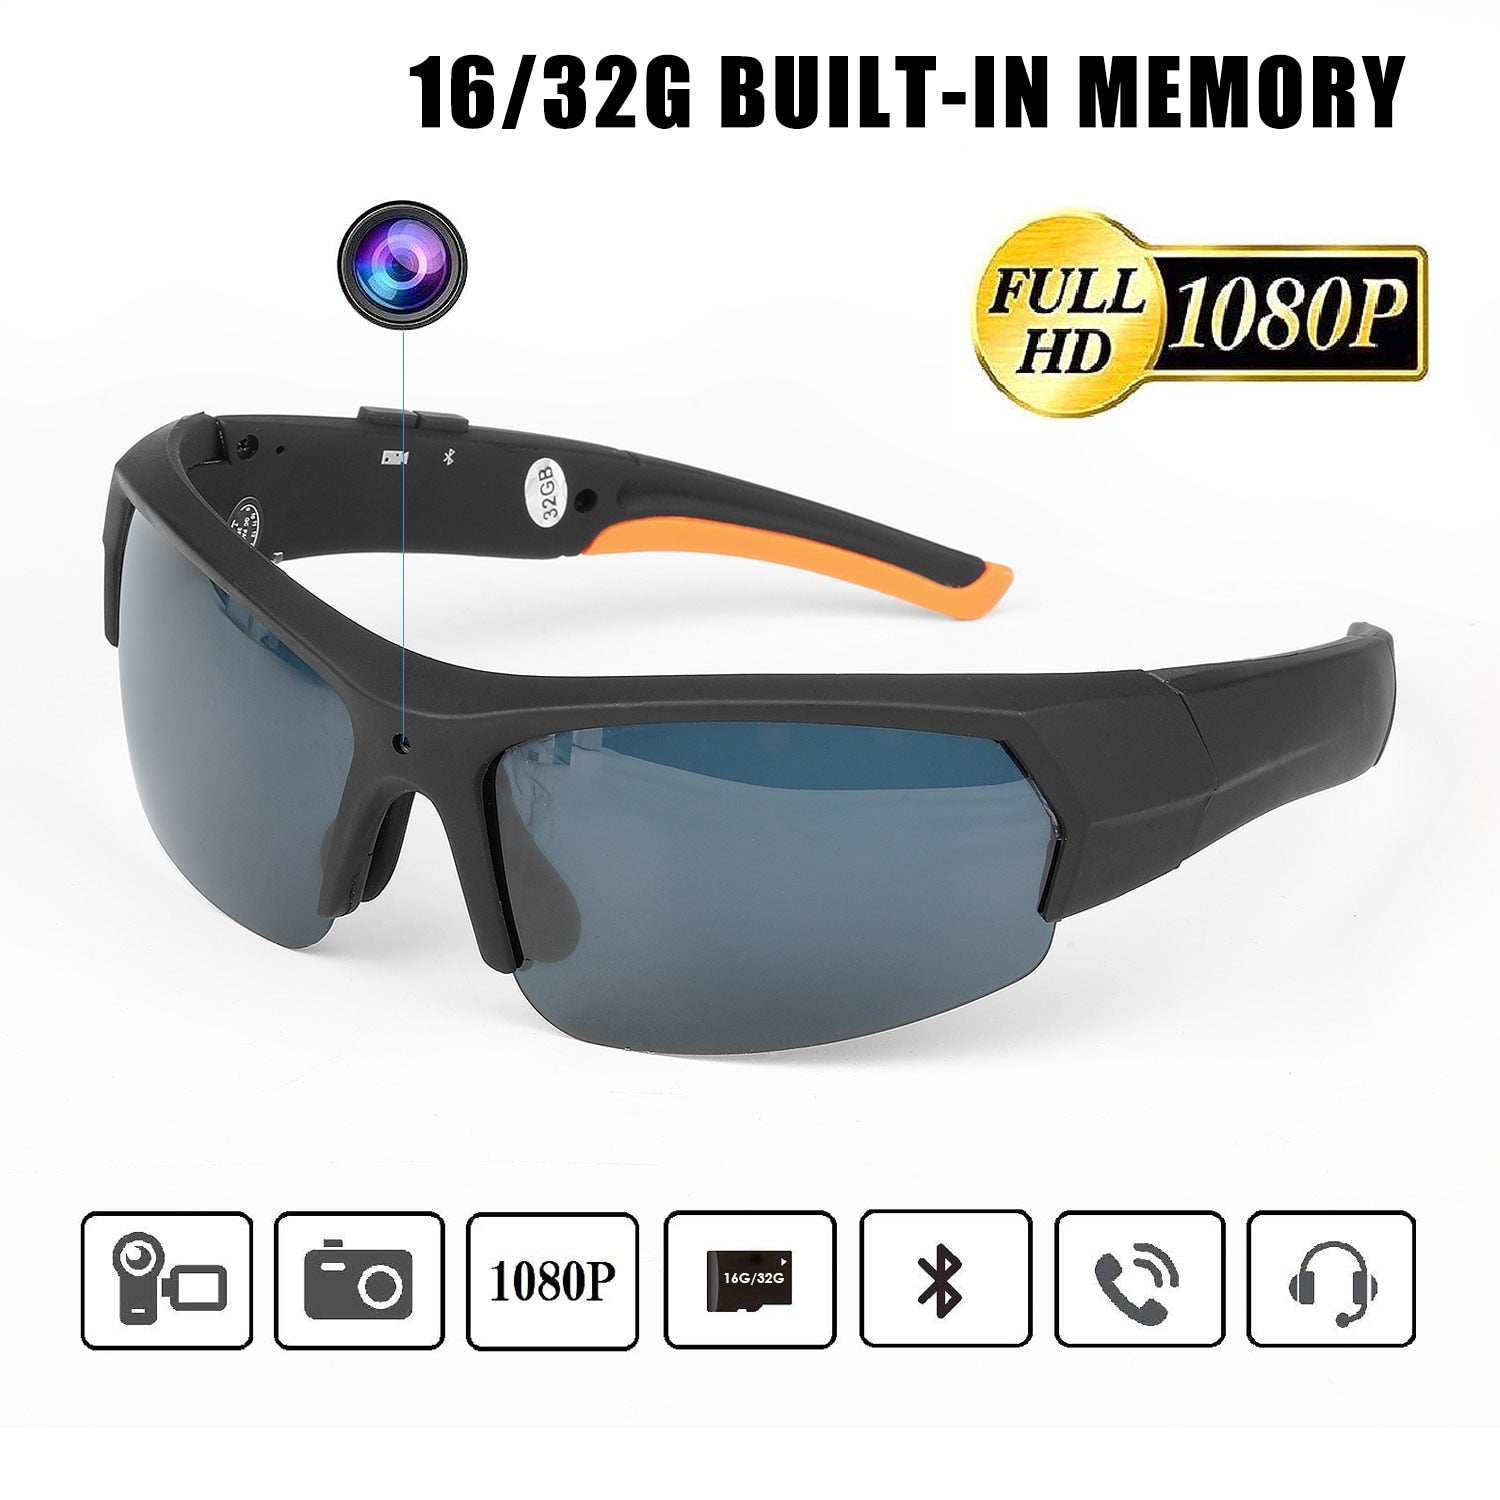 ET HD1080P Sunglasses Camera Headset Smart Mini Camera Glasses Multifunctional Bluetooth MP3 Player Sports Accessories 16/32Gb - MegaStartNation